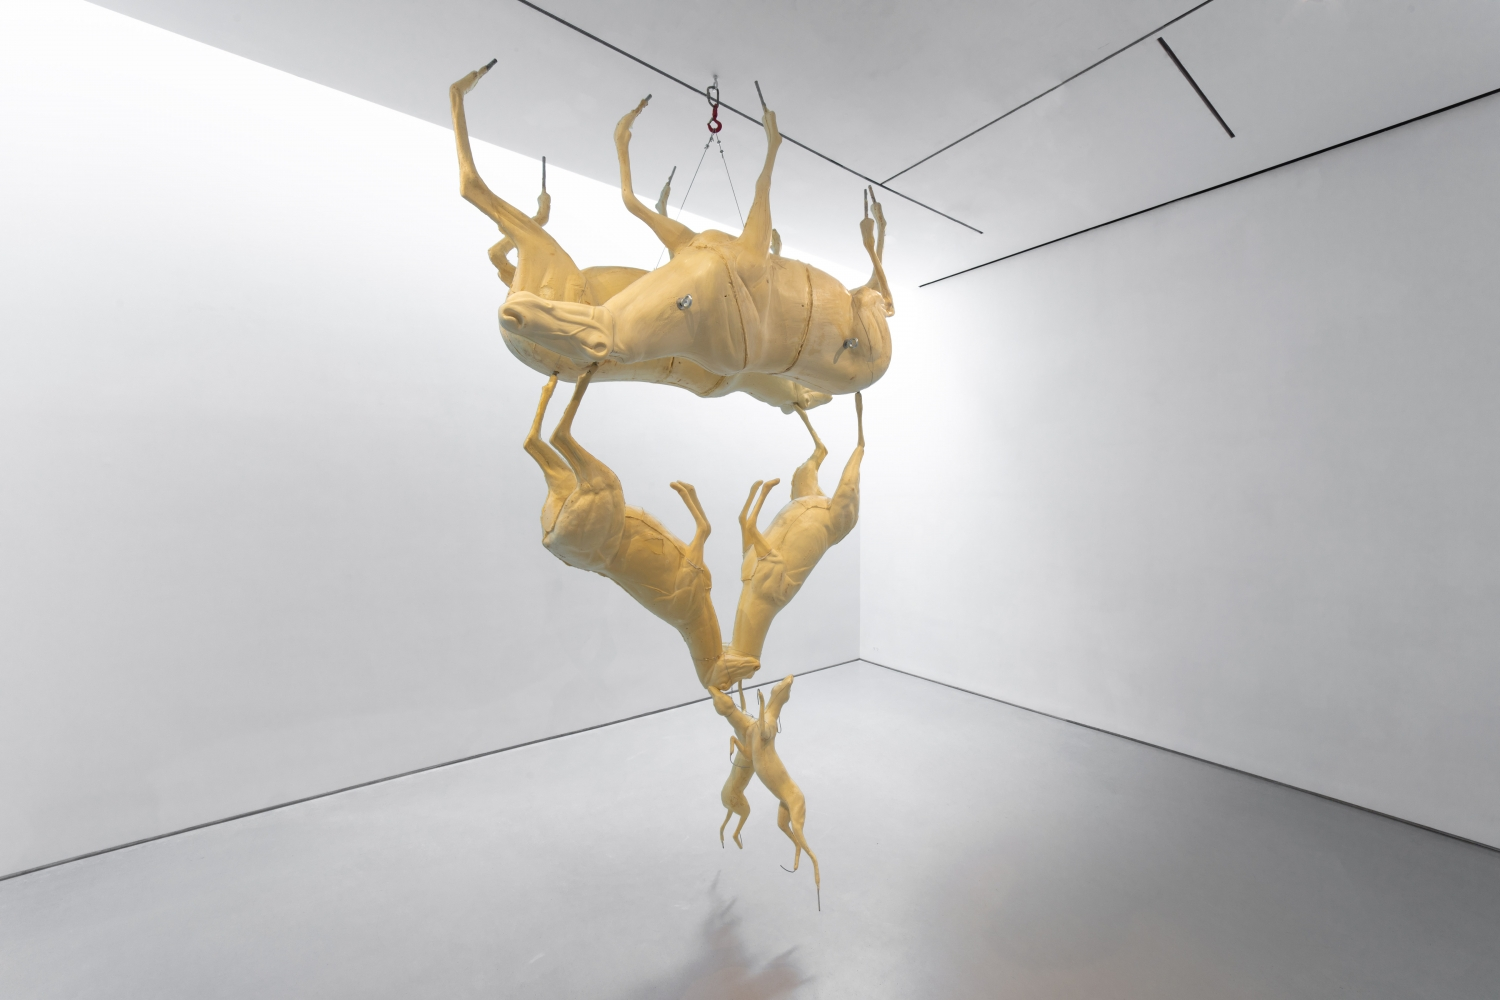 hanging sculpture composed of upside down taxidermy forms of caribou, deer and foxes